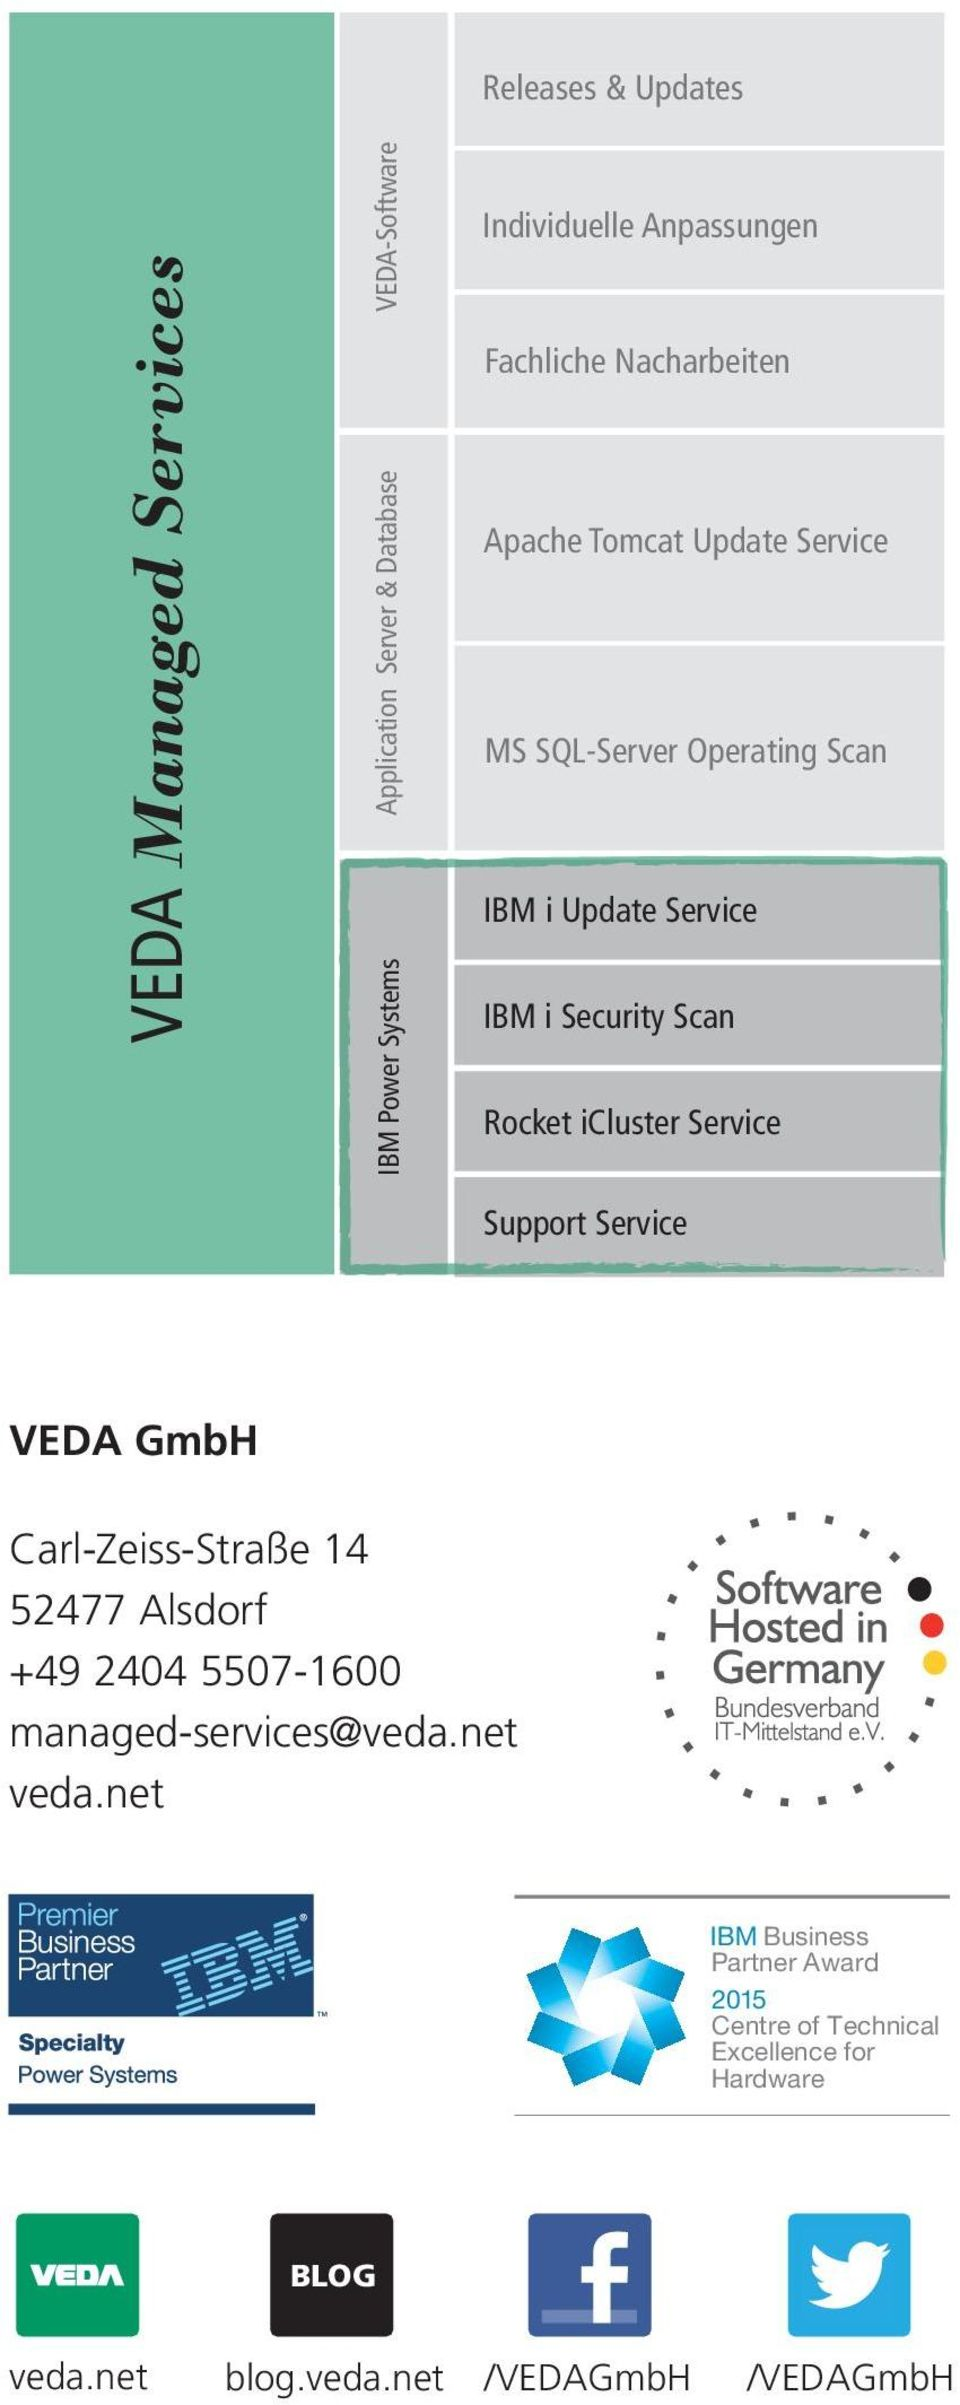 Rocket icluster Service Support Service VEDA GmbH Carl-Zeiss-Straße 14 52477 Alsdorf +49 2404 5507-1600 managed-services@veda.